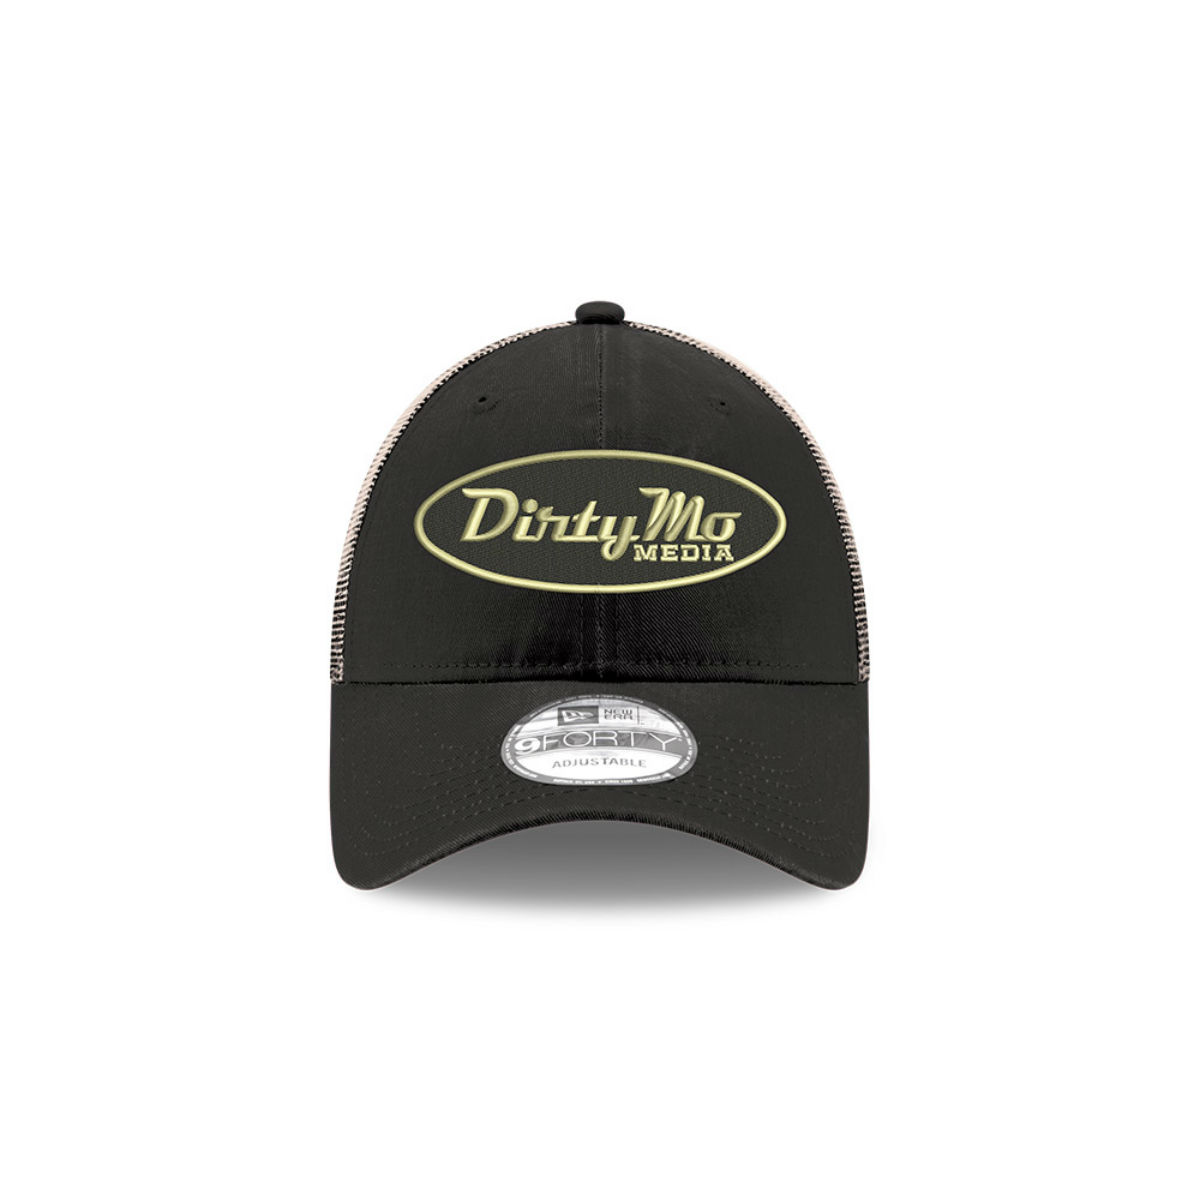 Dale Jr Dirty Mo Media 2020 New Era 9FORTY Black Stone Trucker Hat